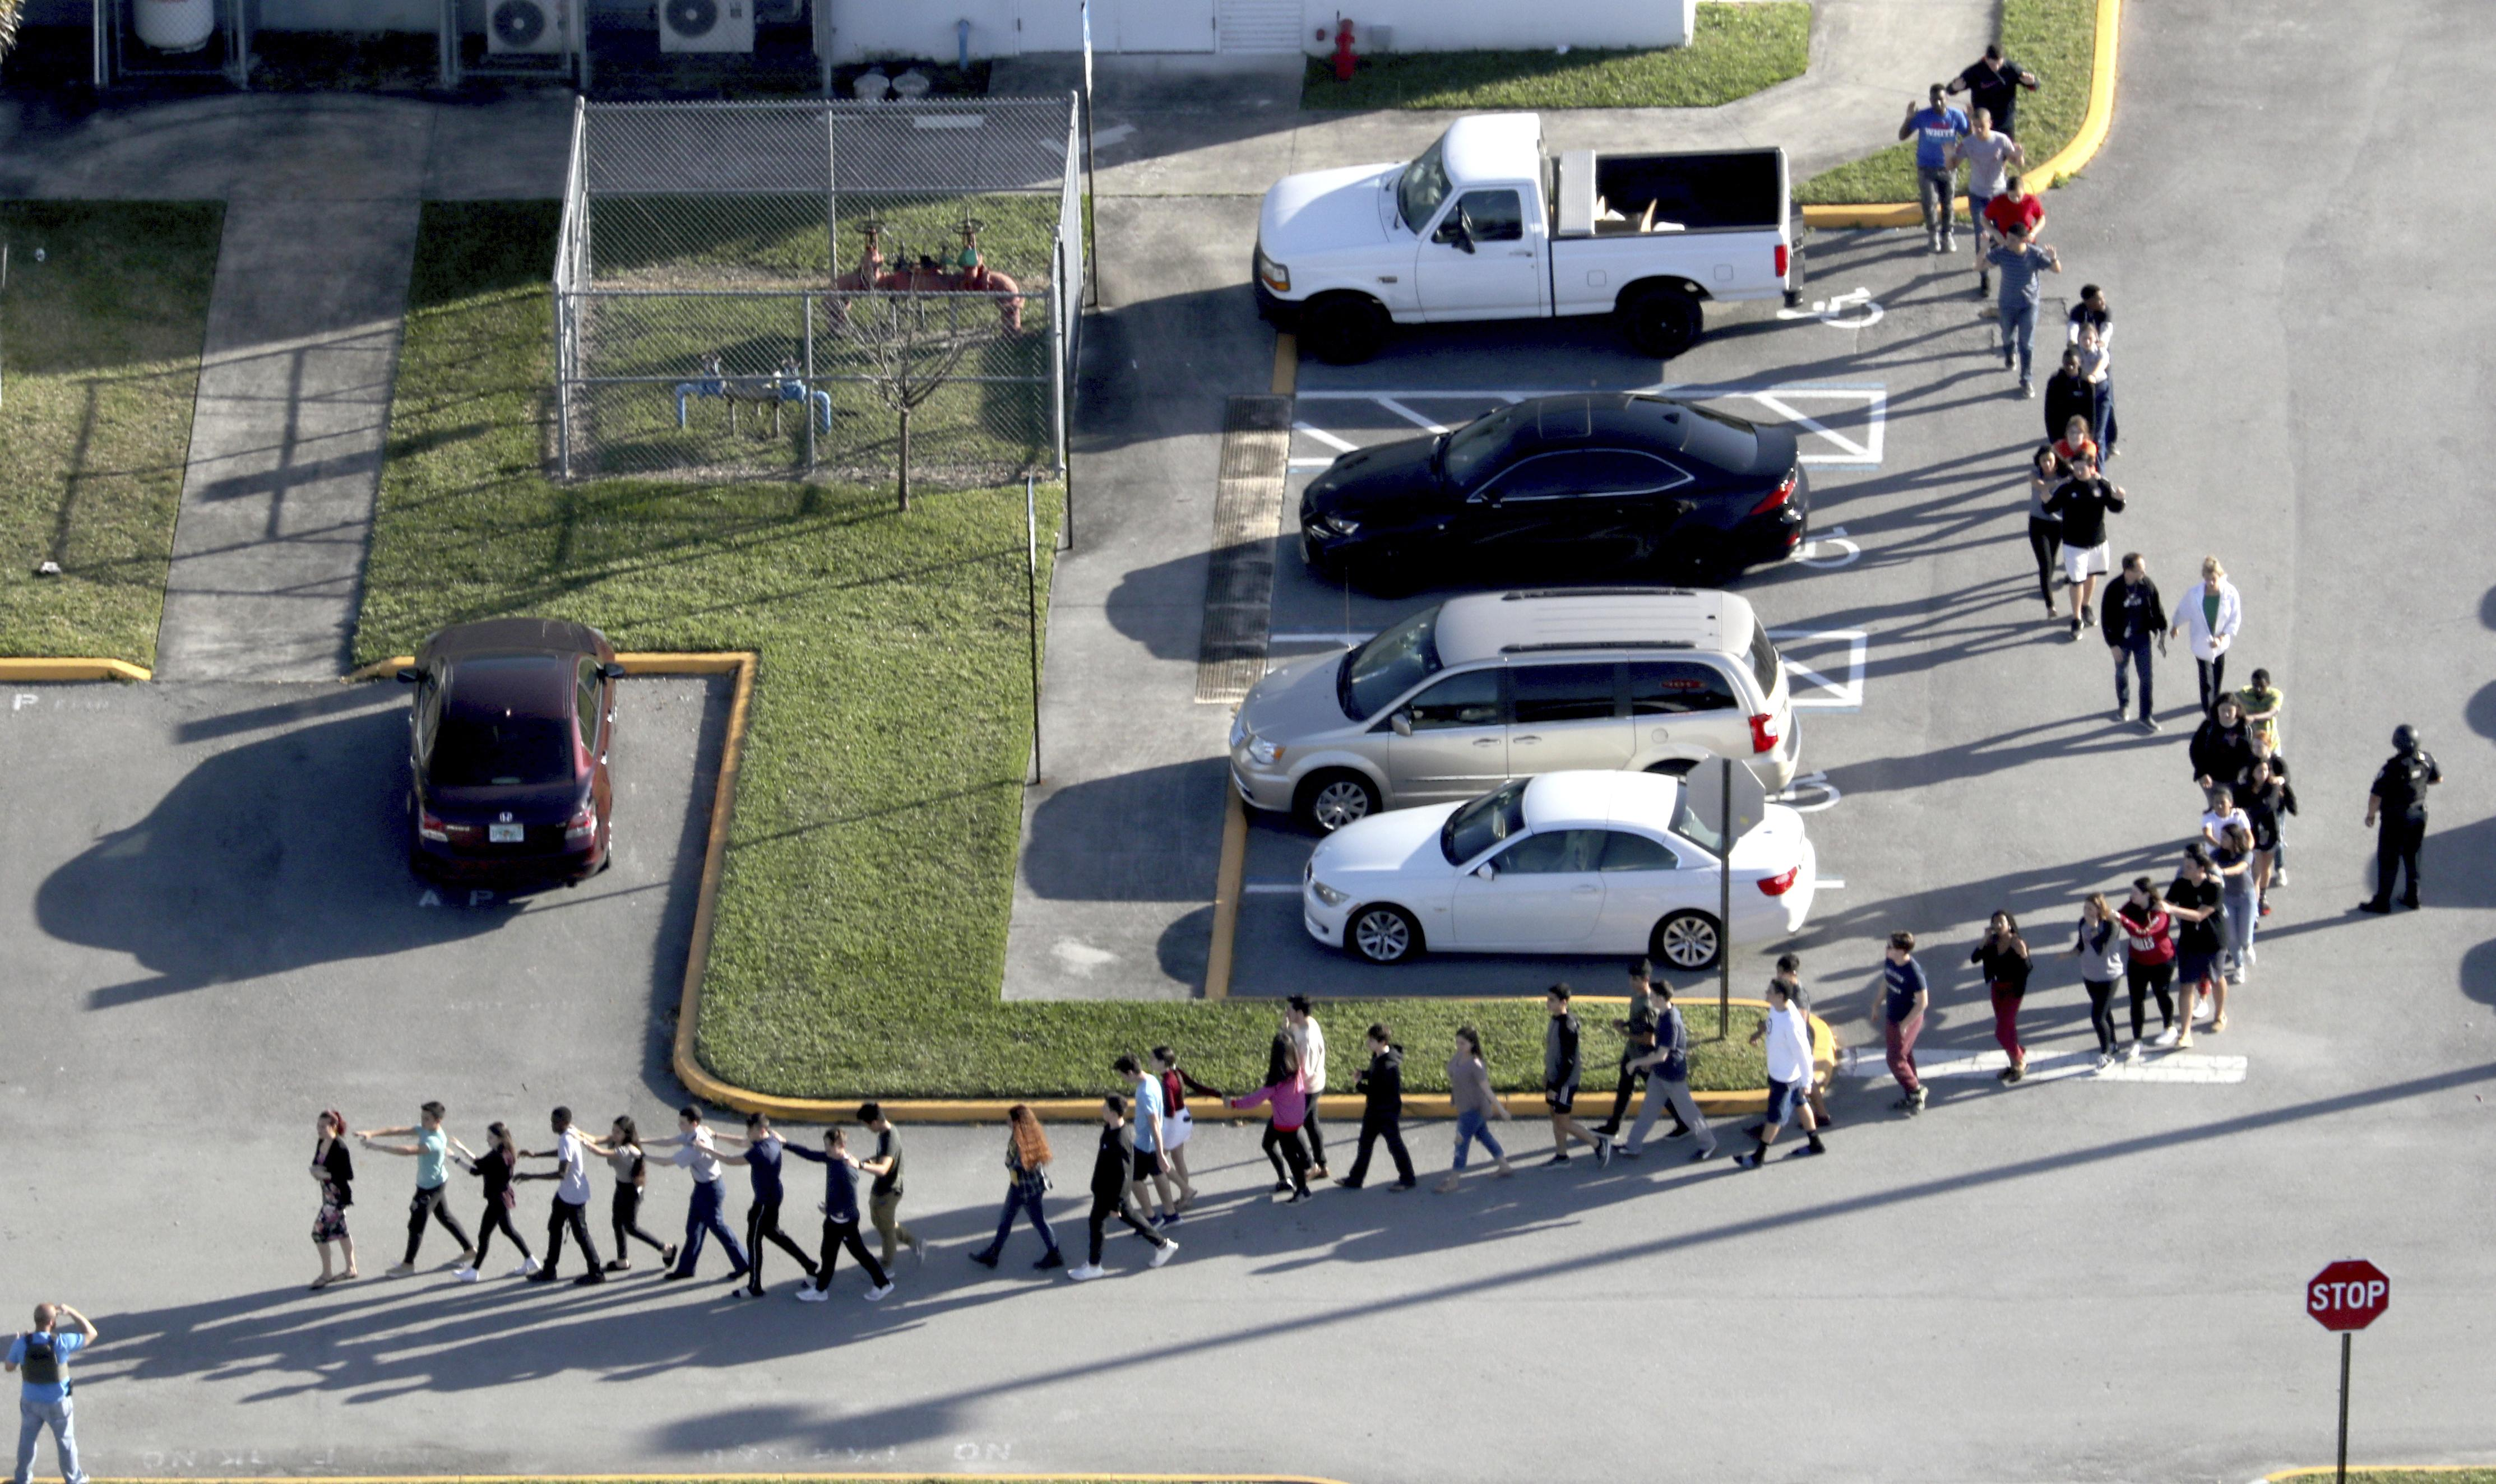 Students and teachers were evacuated from the Florida school